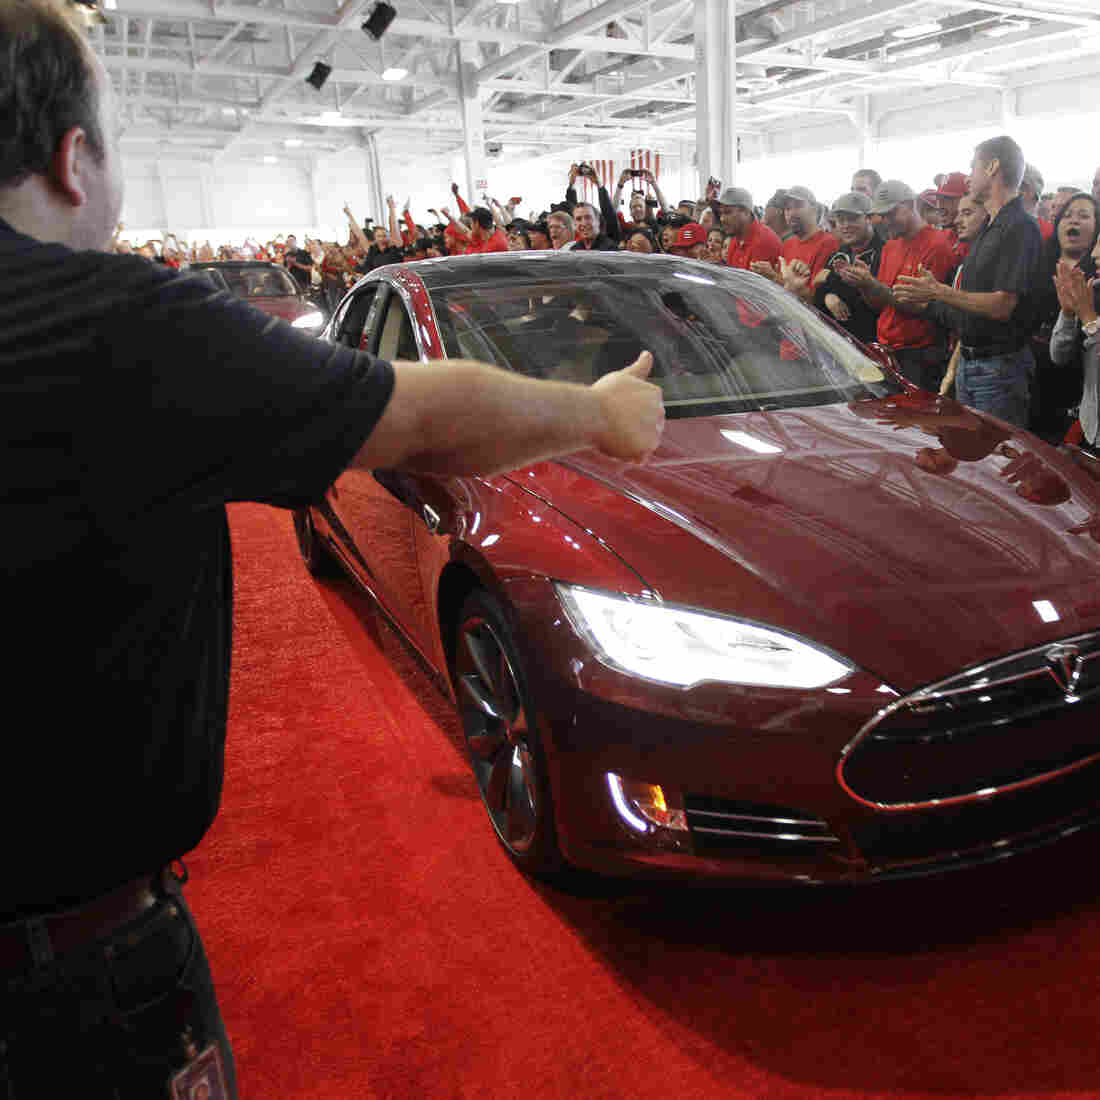 Tesla's Big Gamble: Can The Electric Car Go Mainstream?